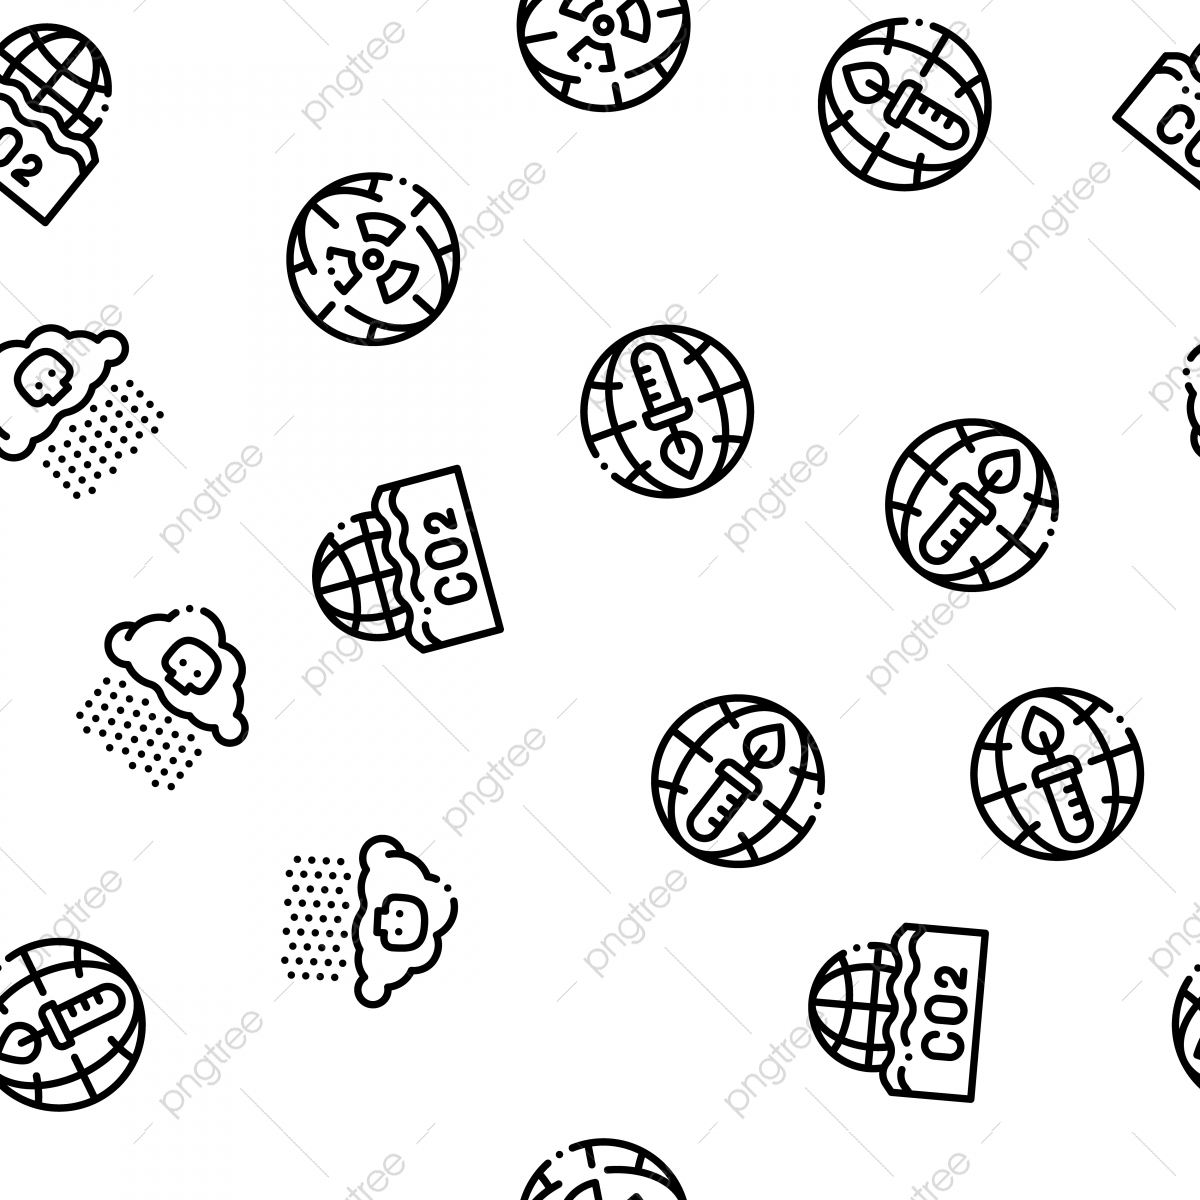 Black Abstract Earth Vector Material, Earth, Black Earth, Simple Earth PNG  Transparent Clipart Image and PSD File for Free Download in 2020 | Black  abstract, Earth tattoo, Outdoors tattoo